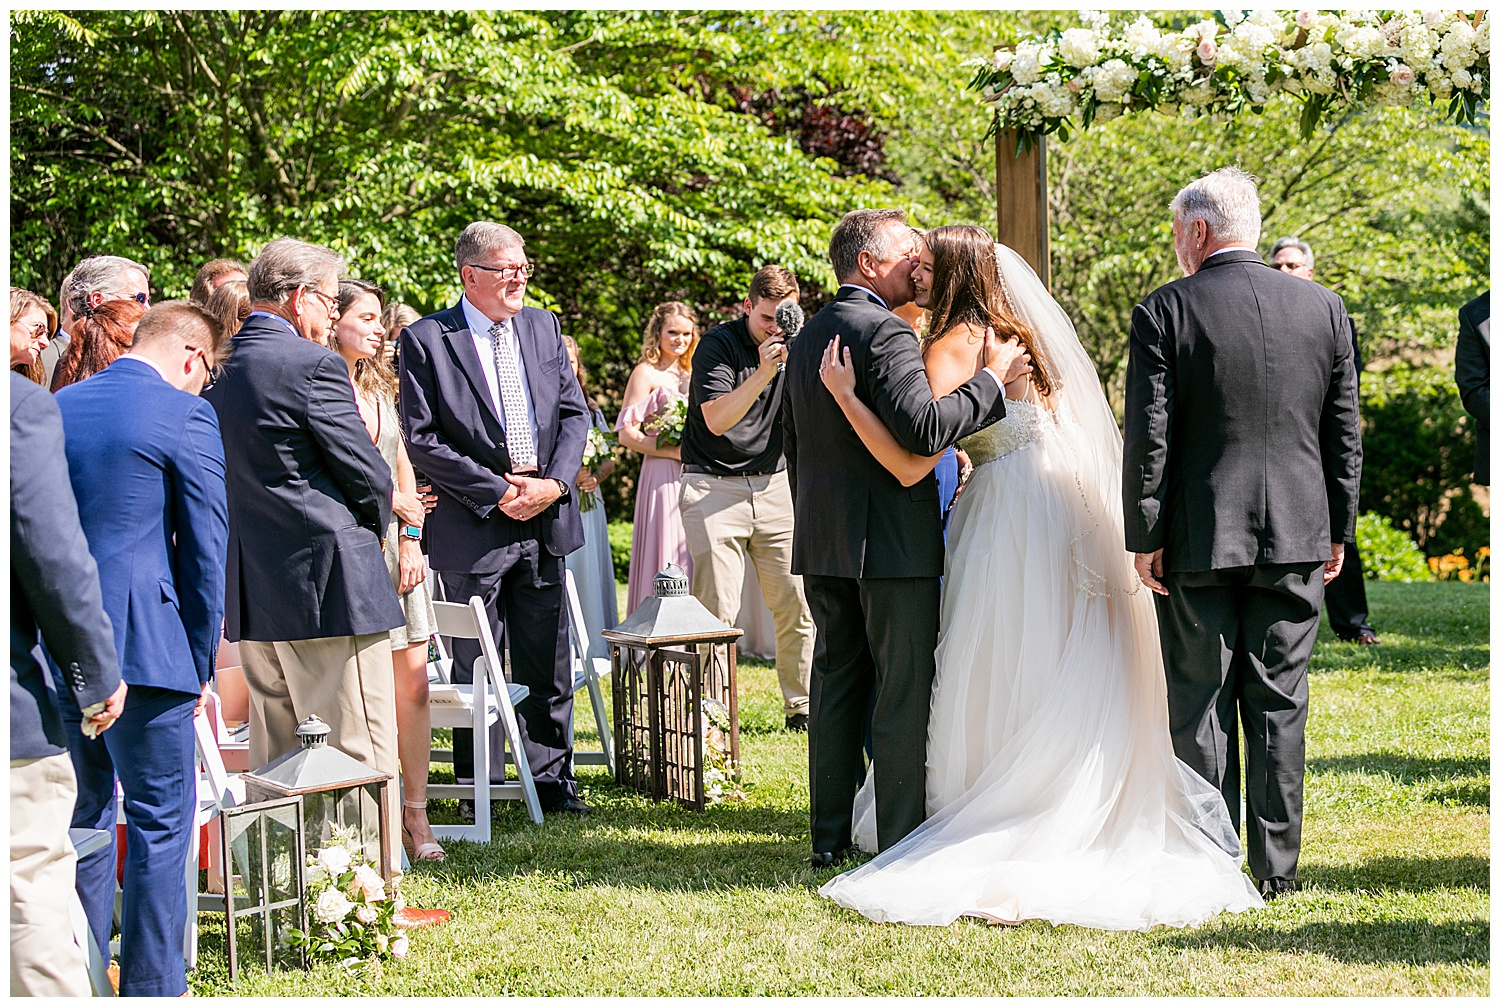 Brittany + Darryl Linwood Estate Wedding Living Radiant Photography photos_0087.jpg